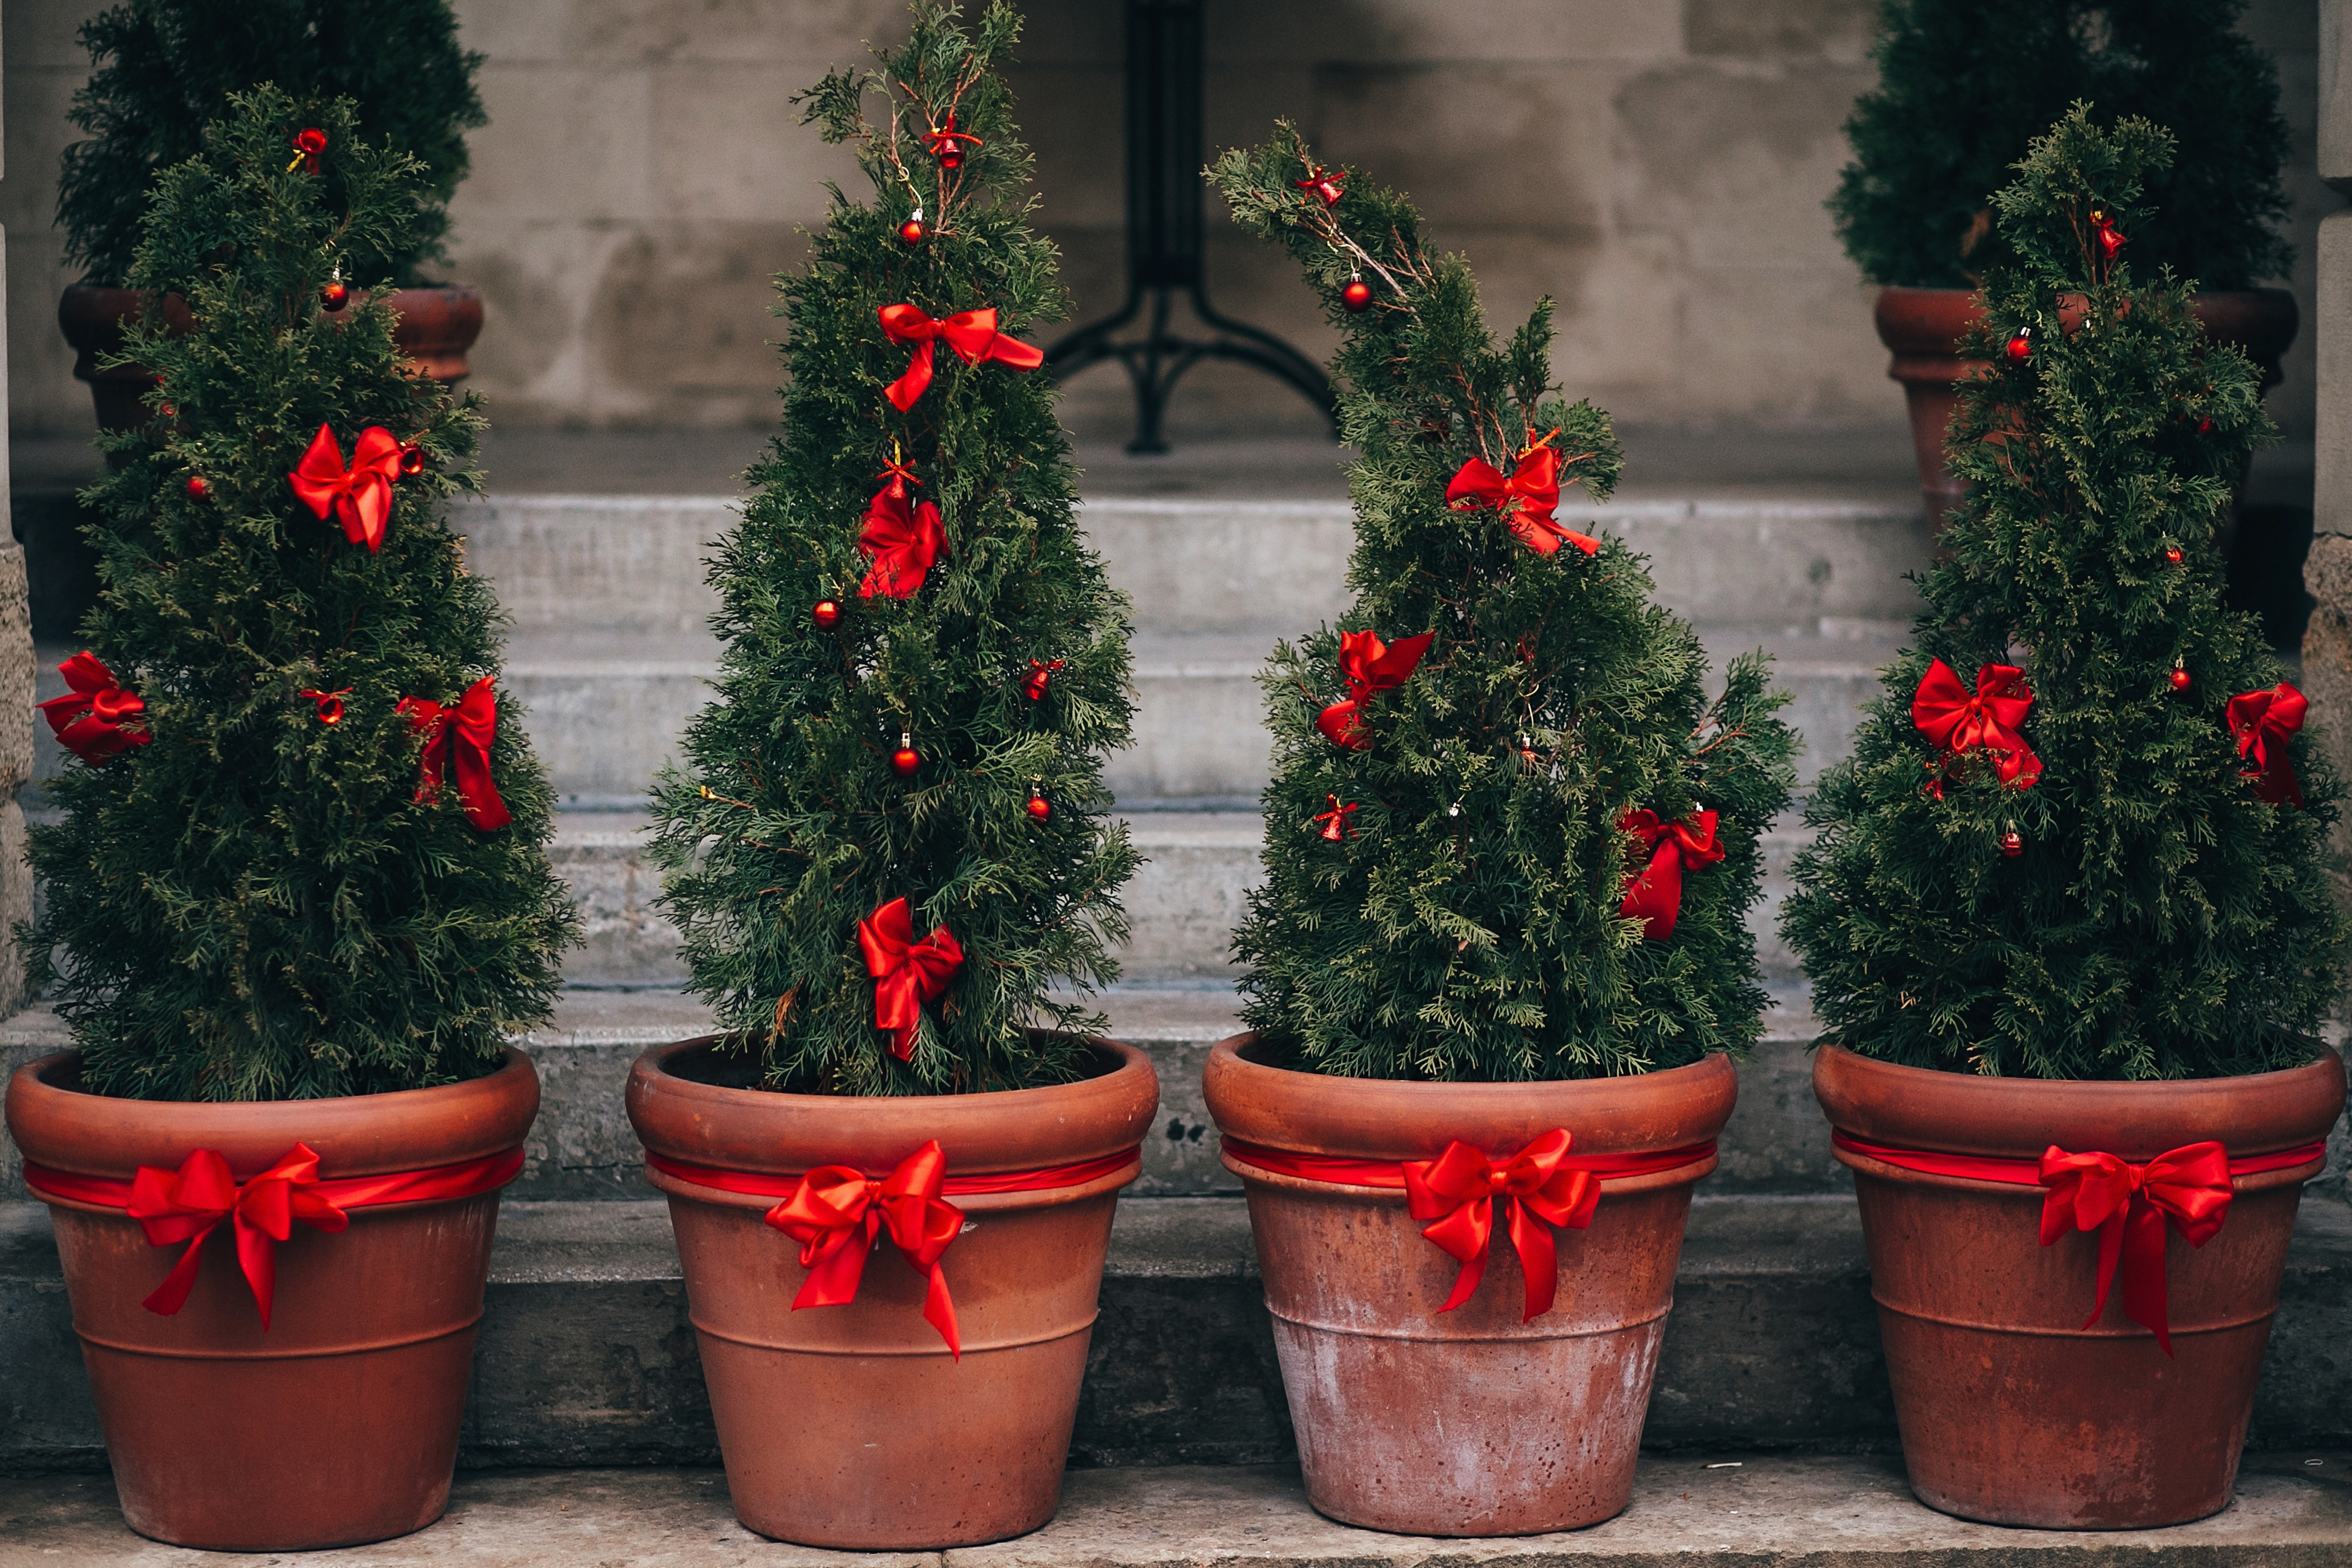 Stylish christmas street decorations, green fir branches with red bows on christmas trees in pots  in european city street. Festive decor and arrangements in city center, winter holidays